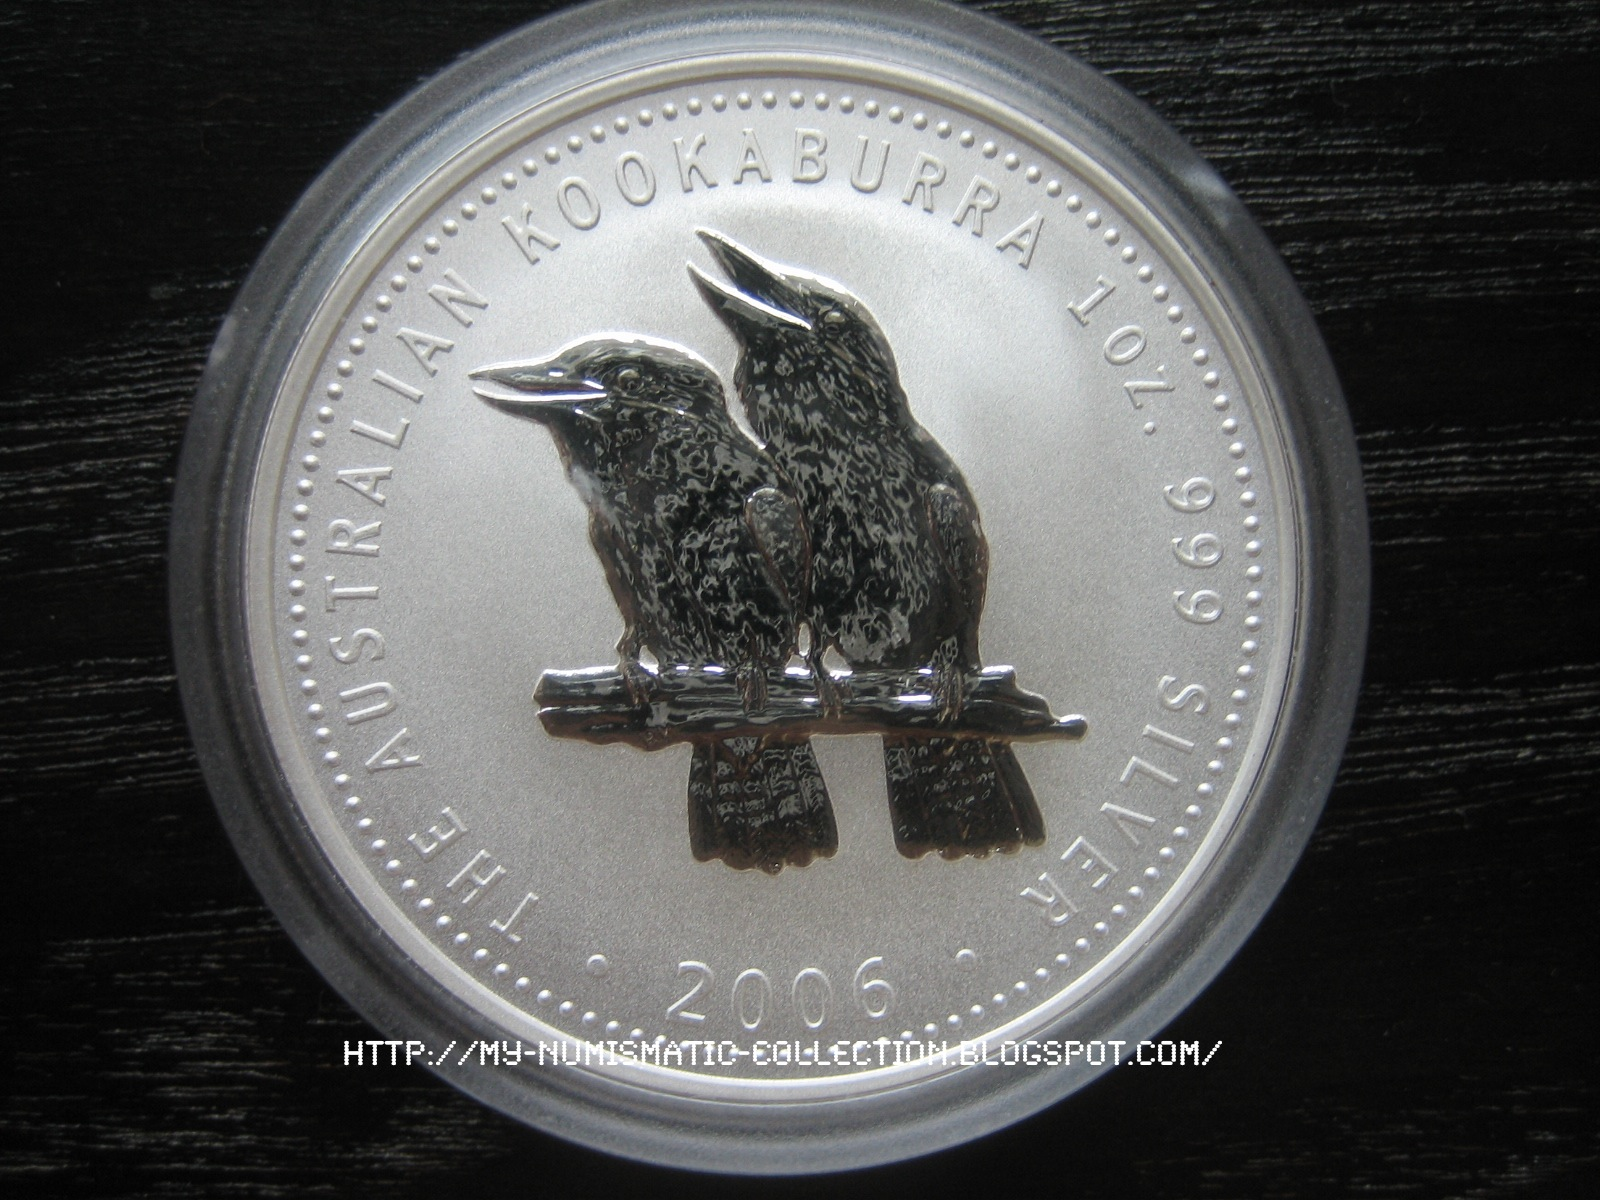 Numismatic Collection 2006 Australian Silver Kookaburra